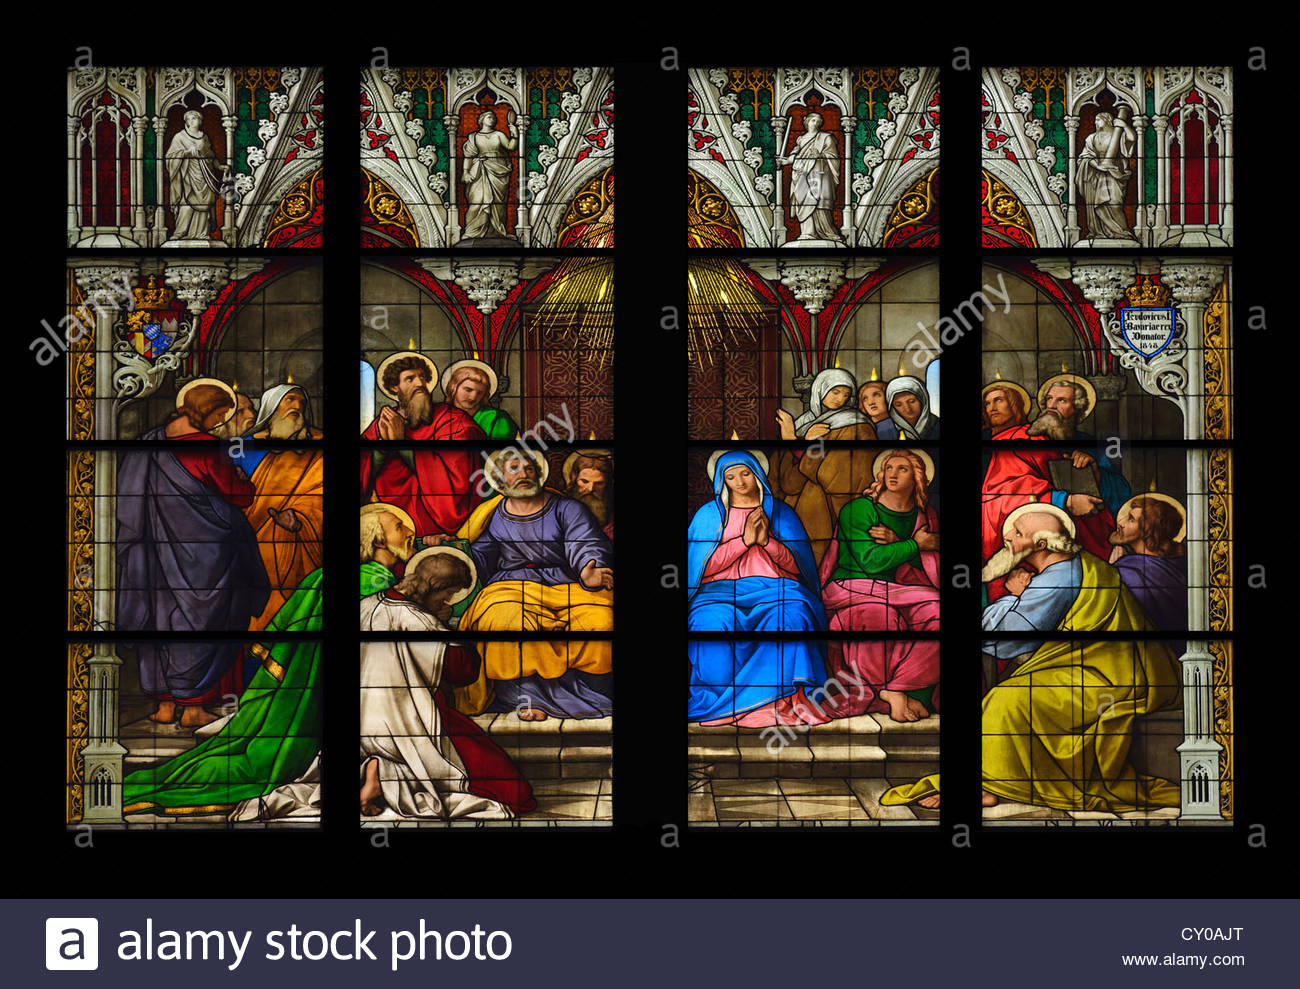 Middle part of the Pfingstfenster window, descent of the Holy Spirit, Cologne Cathedral, a UNESCO World Heritage - Stock Image